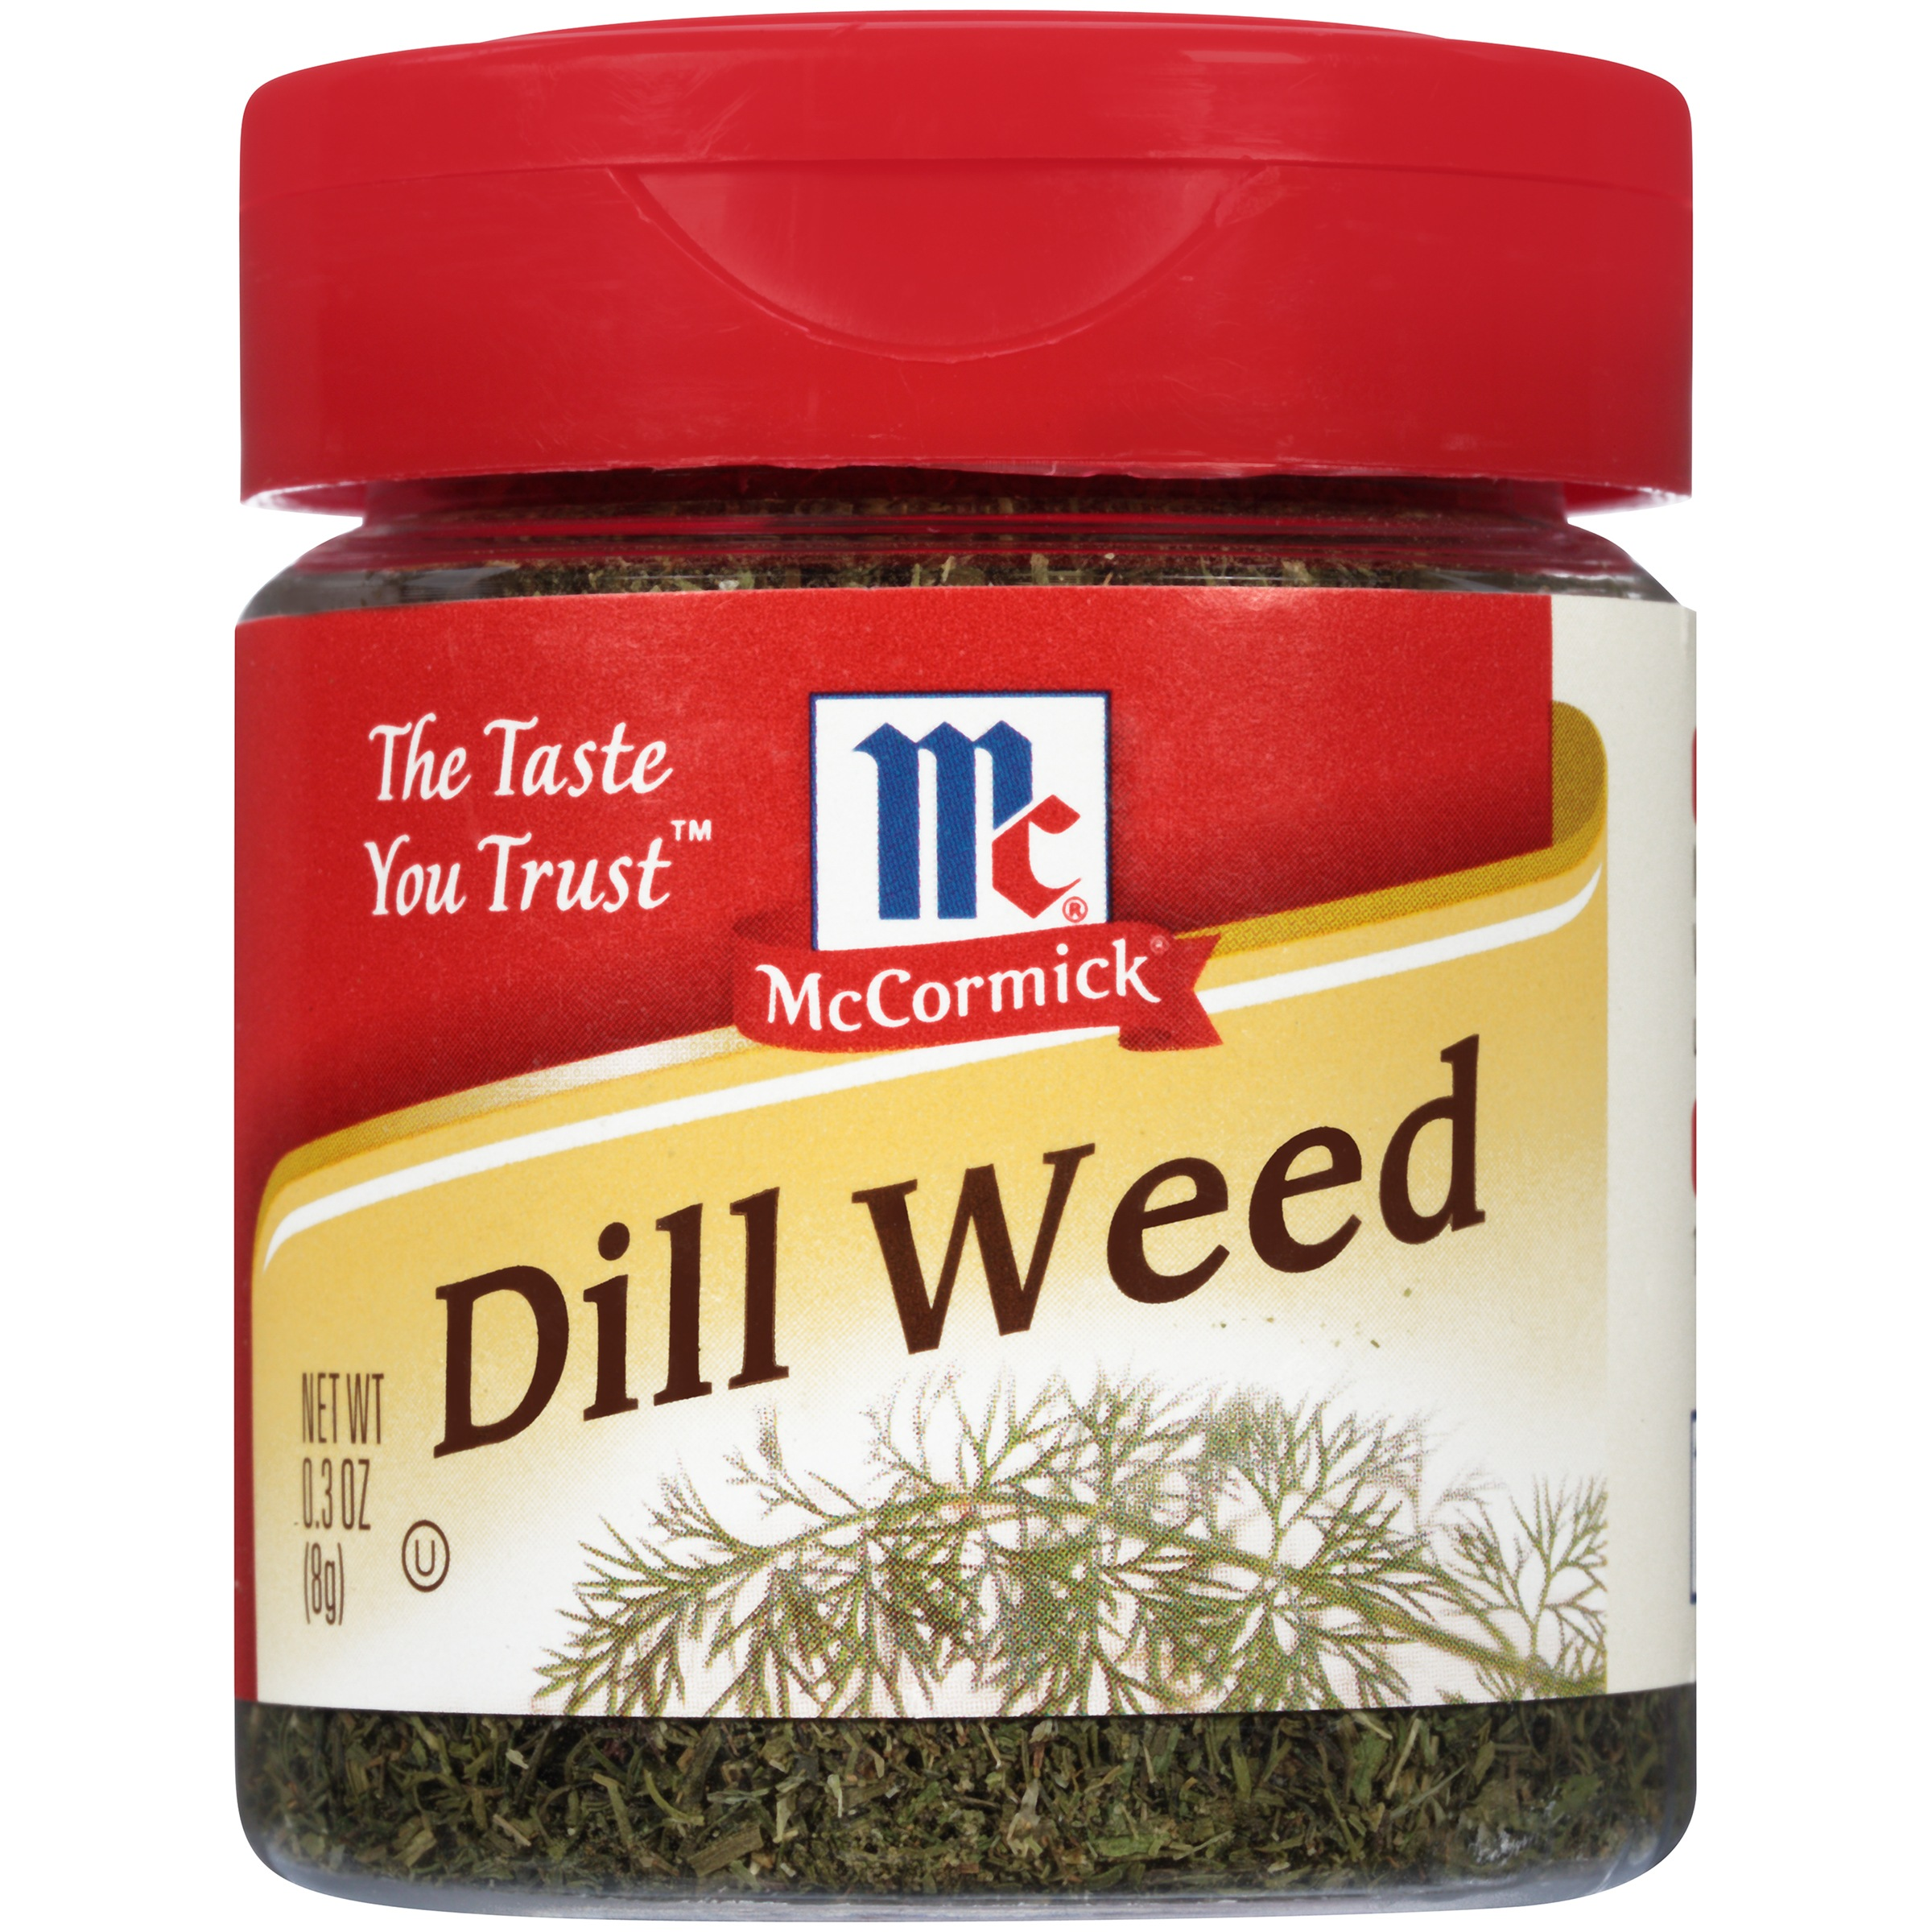 McCormick Specialty Herbs And Spices Dill Weed, .3 oz by McCormick & Co., Inc